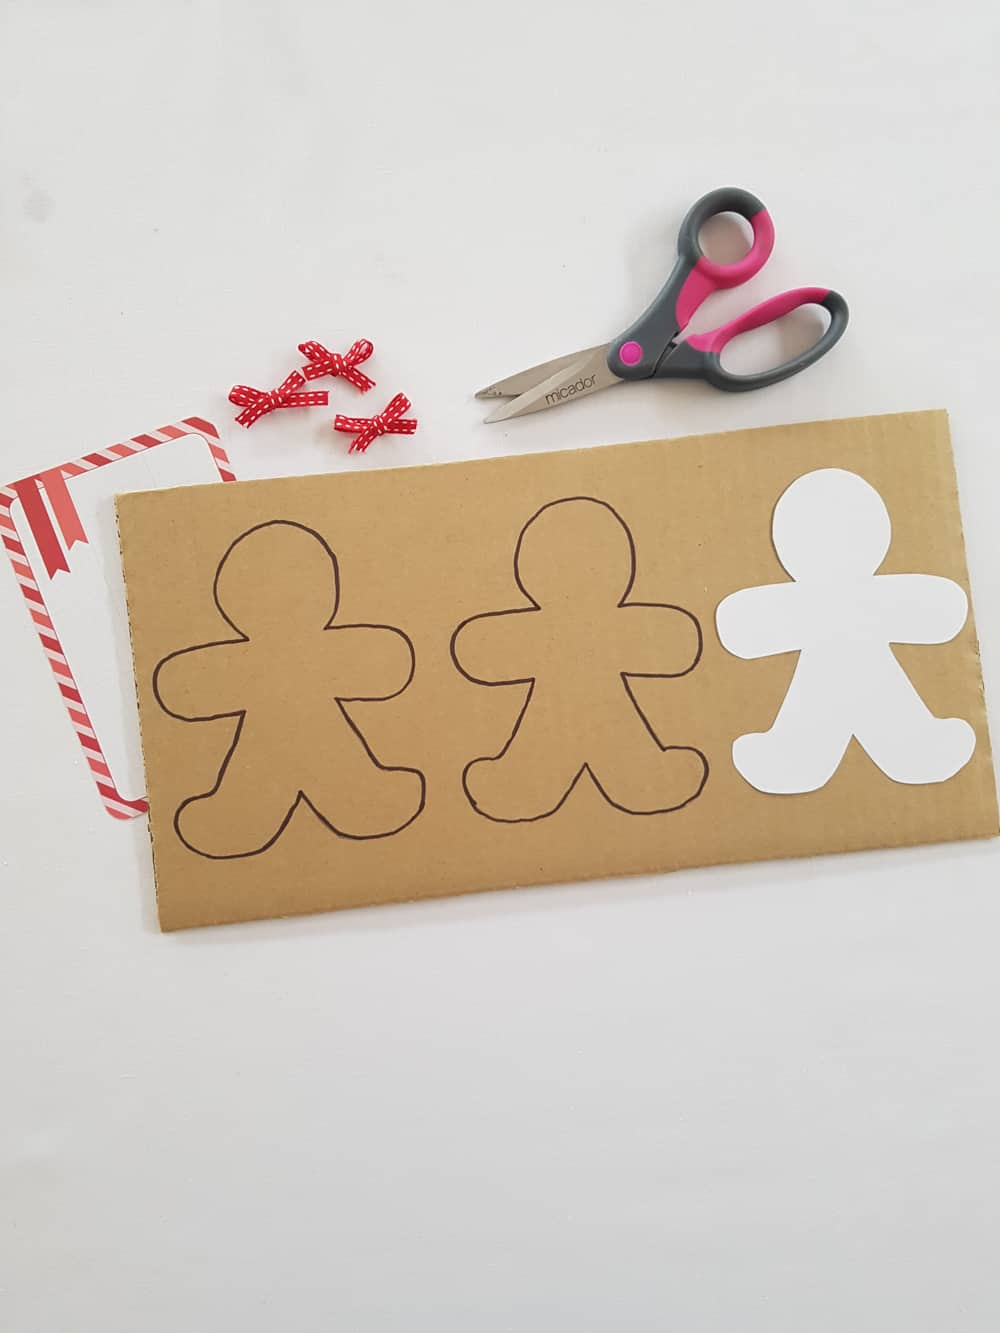 A simple gingerbread lacing activity for holiday-themed fine motor skill practice.